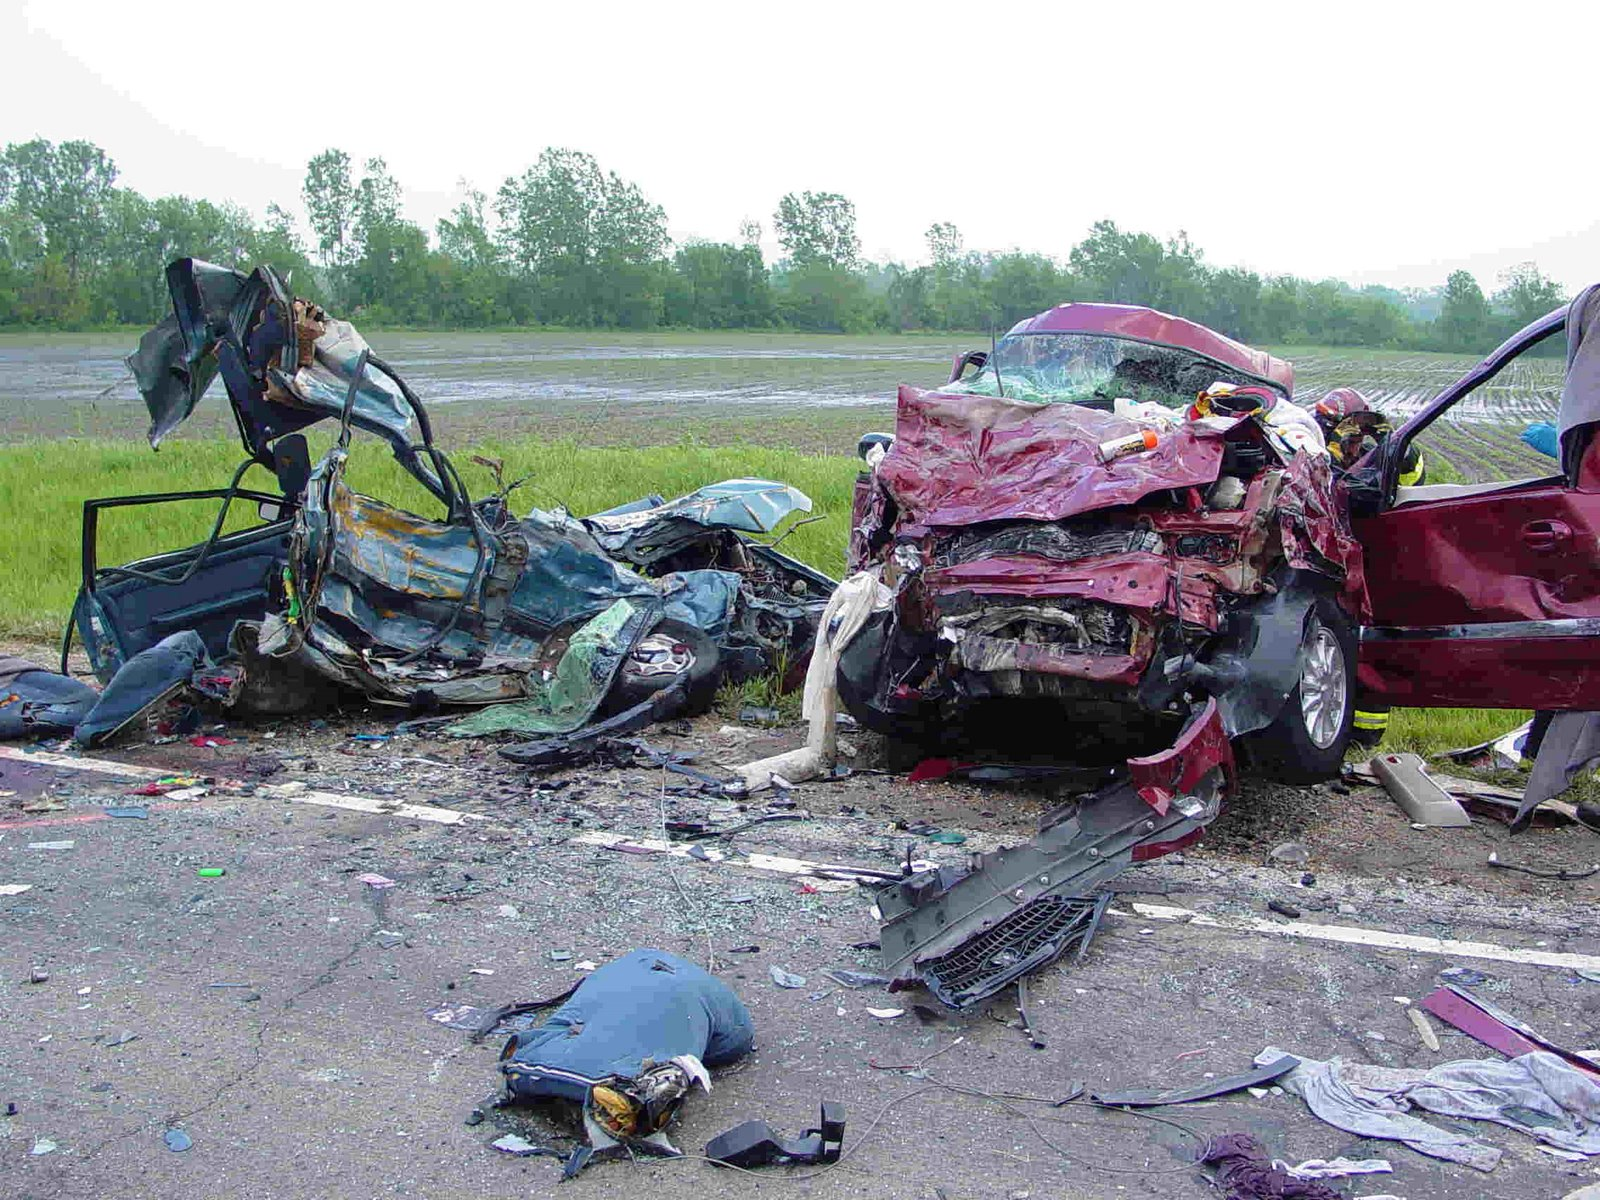 #1 Deadliest Time For Drunk Driving